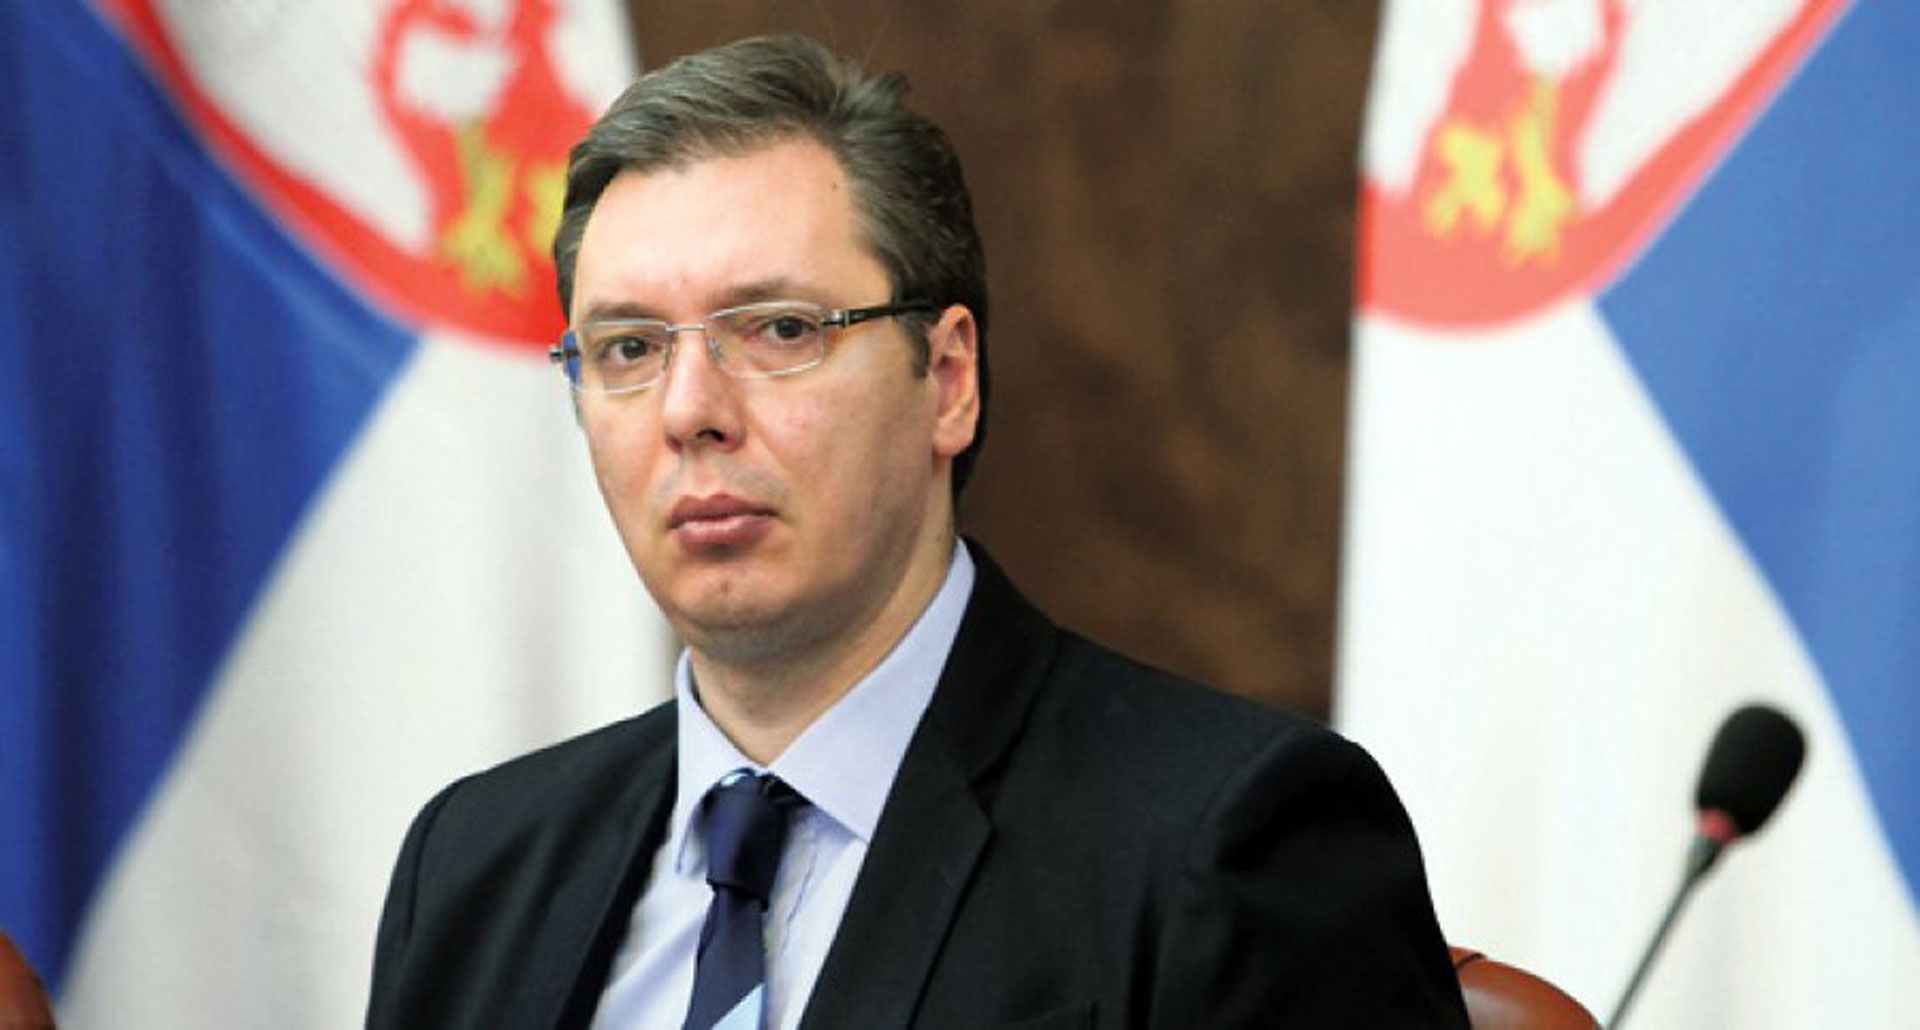 Serbia waits to see what the West will offer, Vucic says